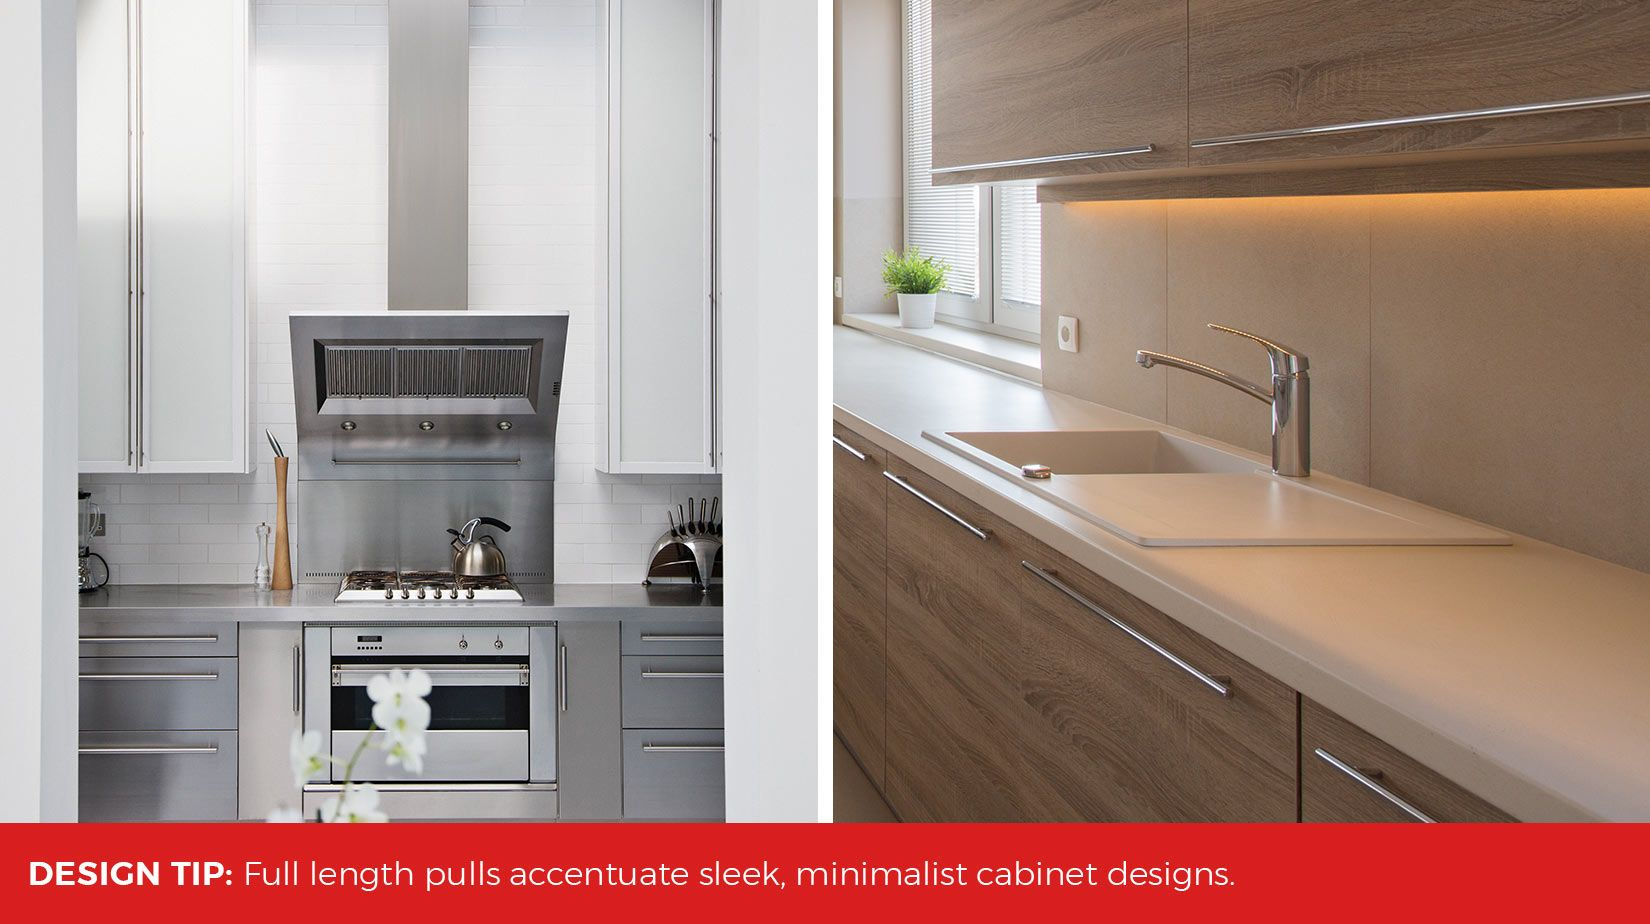 Full Length Cabinet Pulls Are A Great Option For Long Drawers And